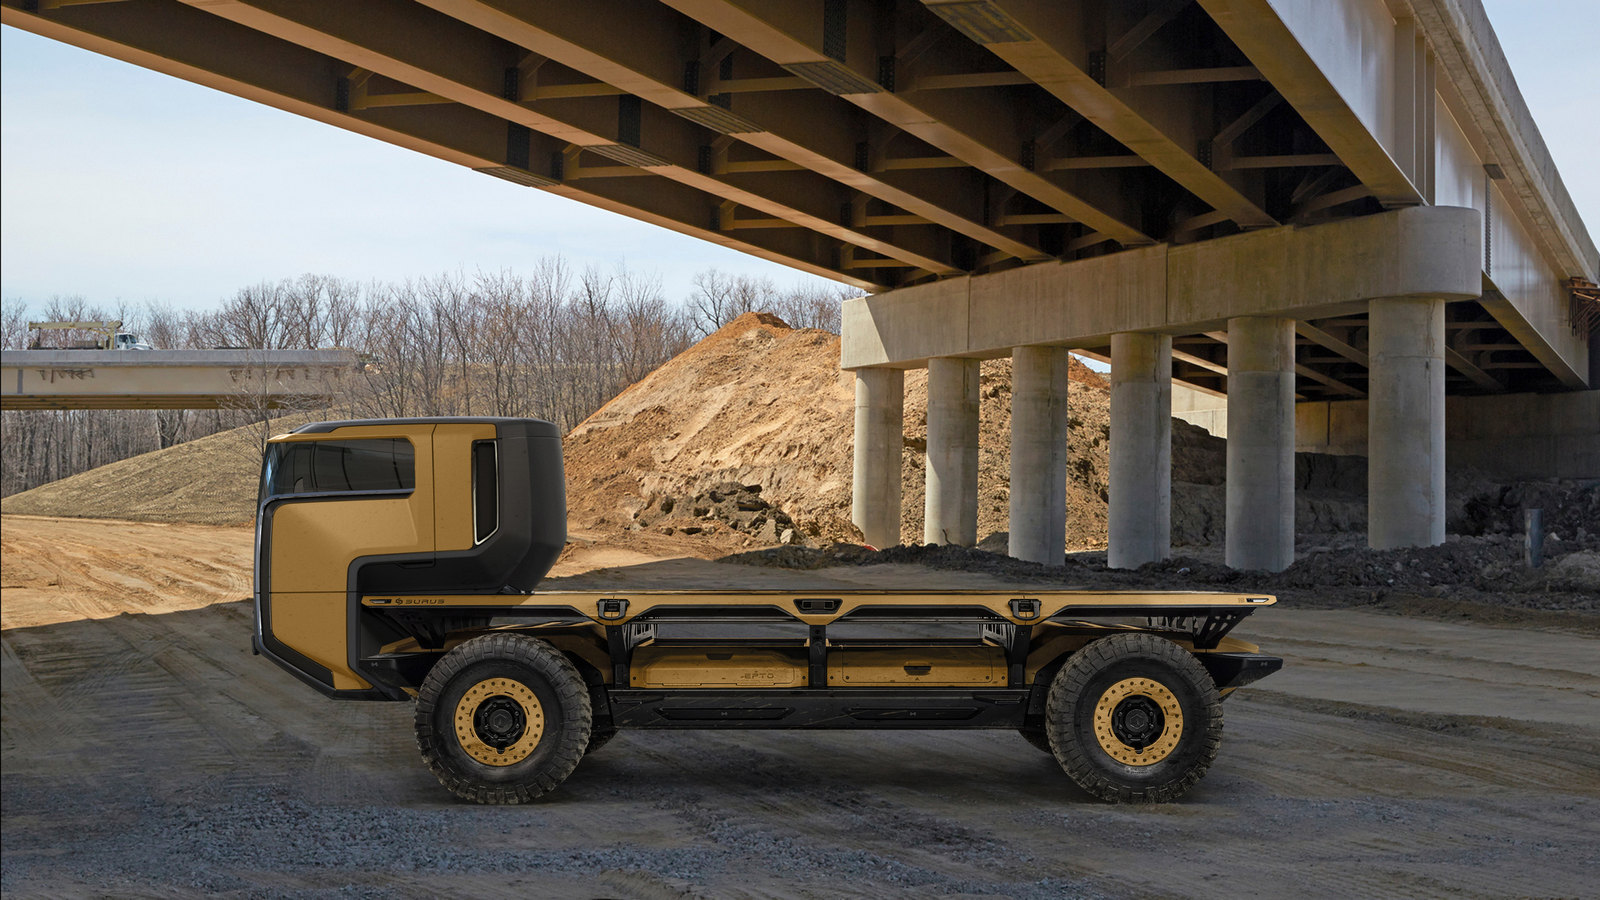 A rendering of the Silent Utility Rover Universal Superstructure (SURUS) platform with a truck chassis to show the potential of flexible fuel cell solutions. SURUS was designed to form a foundation for a family of commercial vehicle solutions that leverages a single propulsion system integrated into a common chassis.